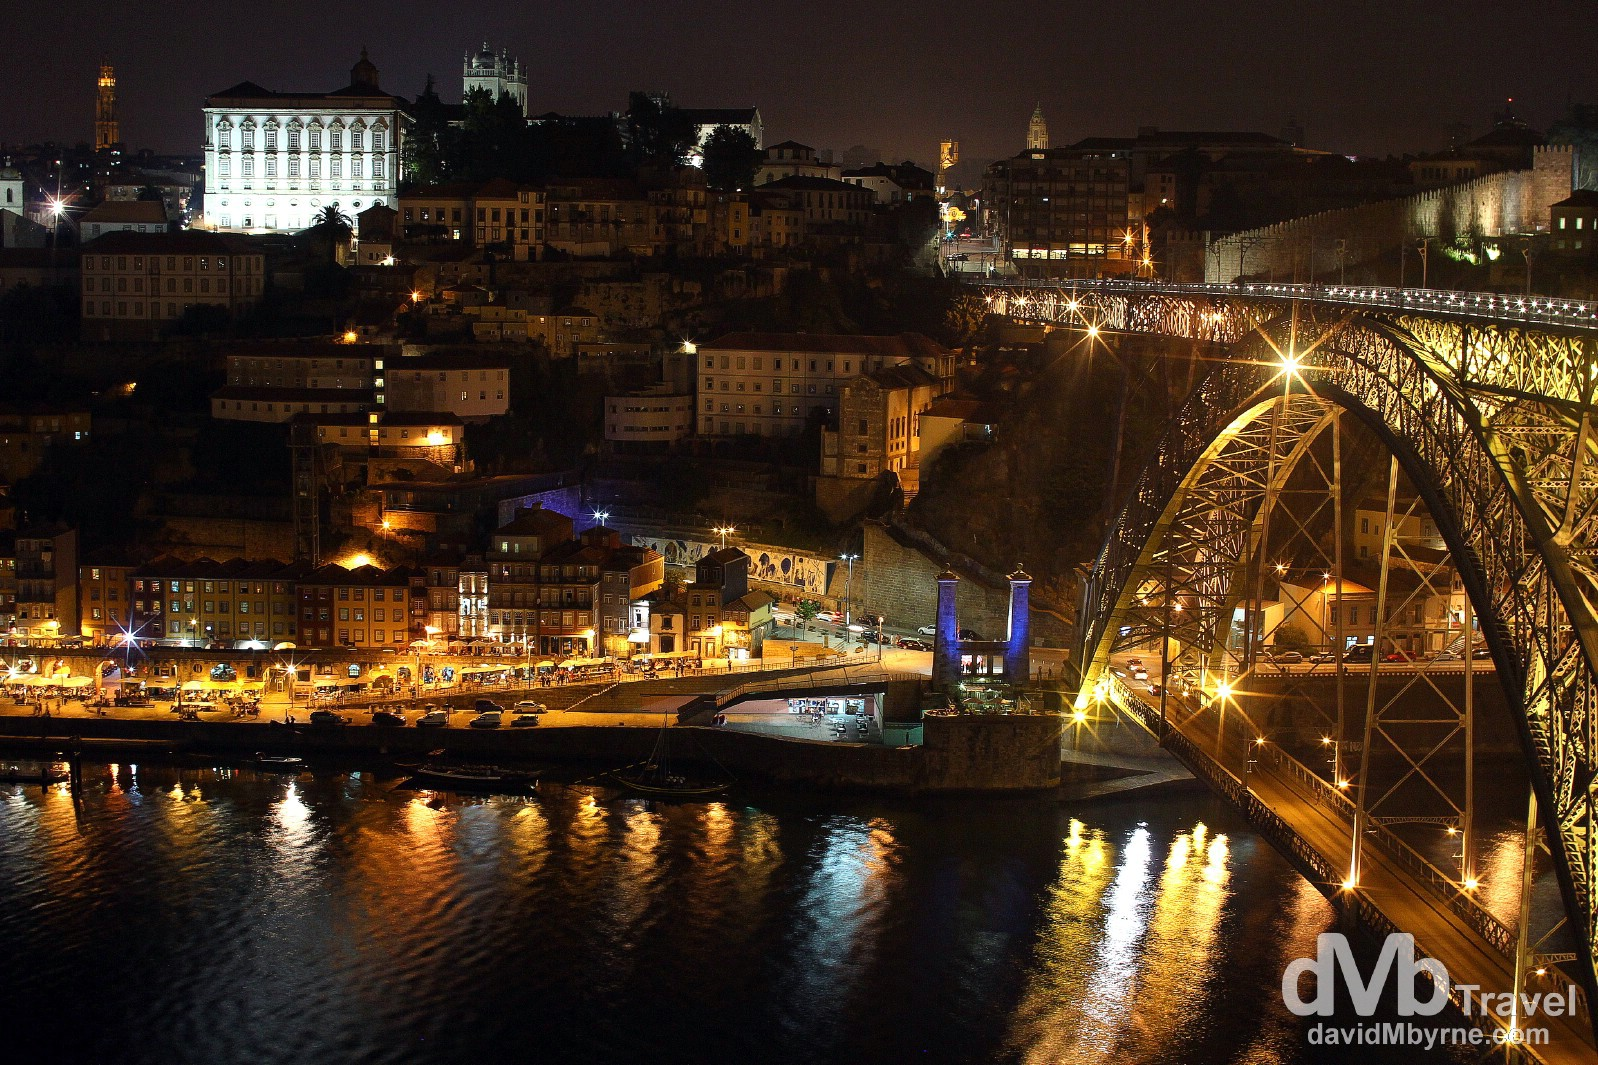 I didn't find Porto as photogenic at night as I found Lisbon but I did like this night time view, a view of the Douro River, Ponte D. Luis I bridge & the historic centre of Porto as seen from the Jardin do Morro in the Gaia district of the city. August 28th 2013.